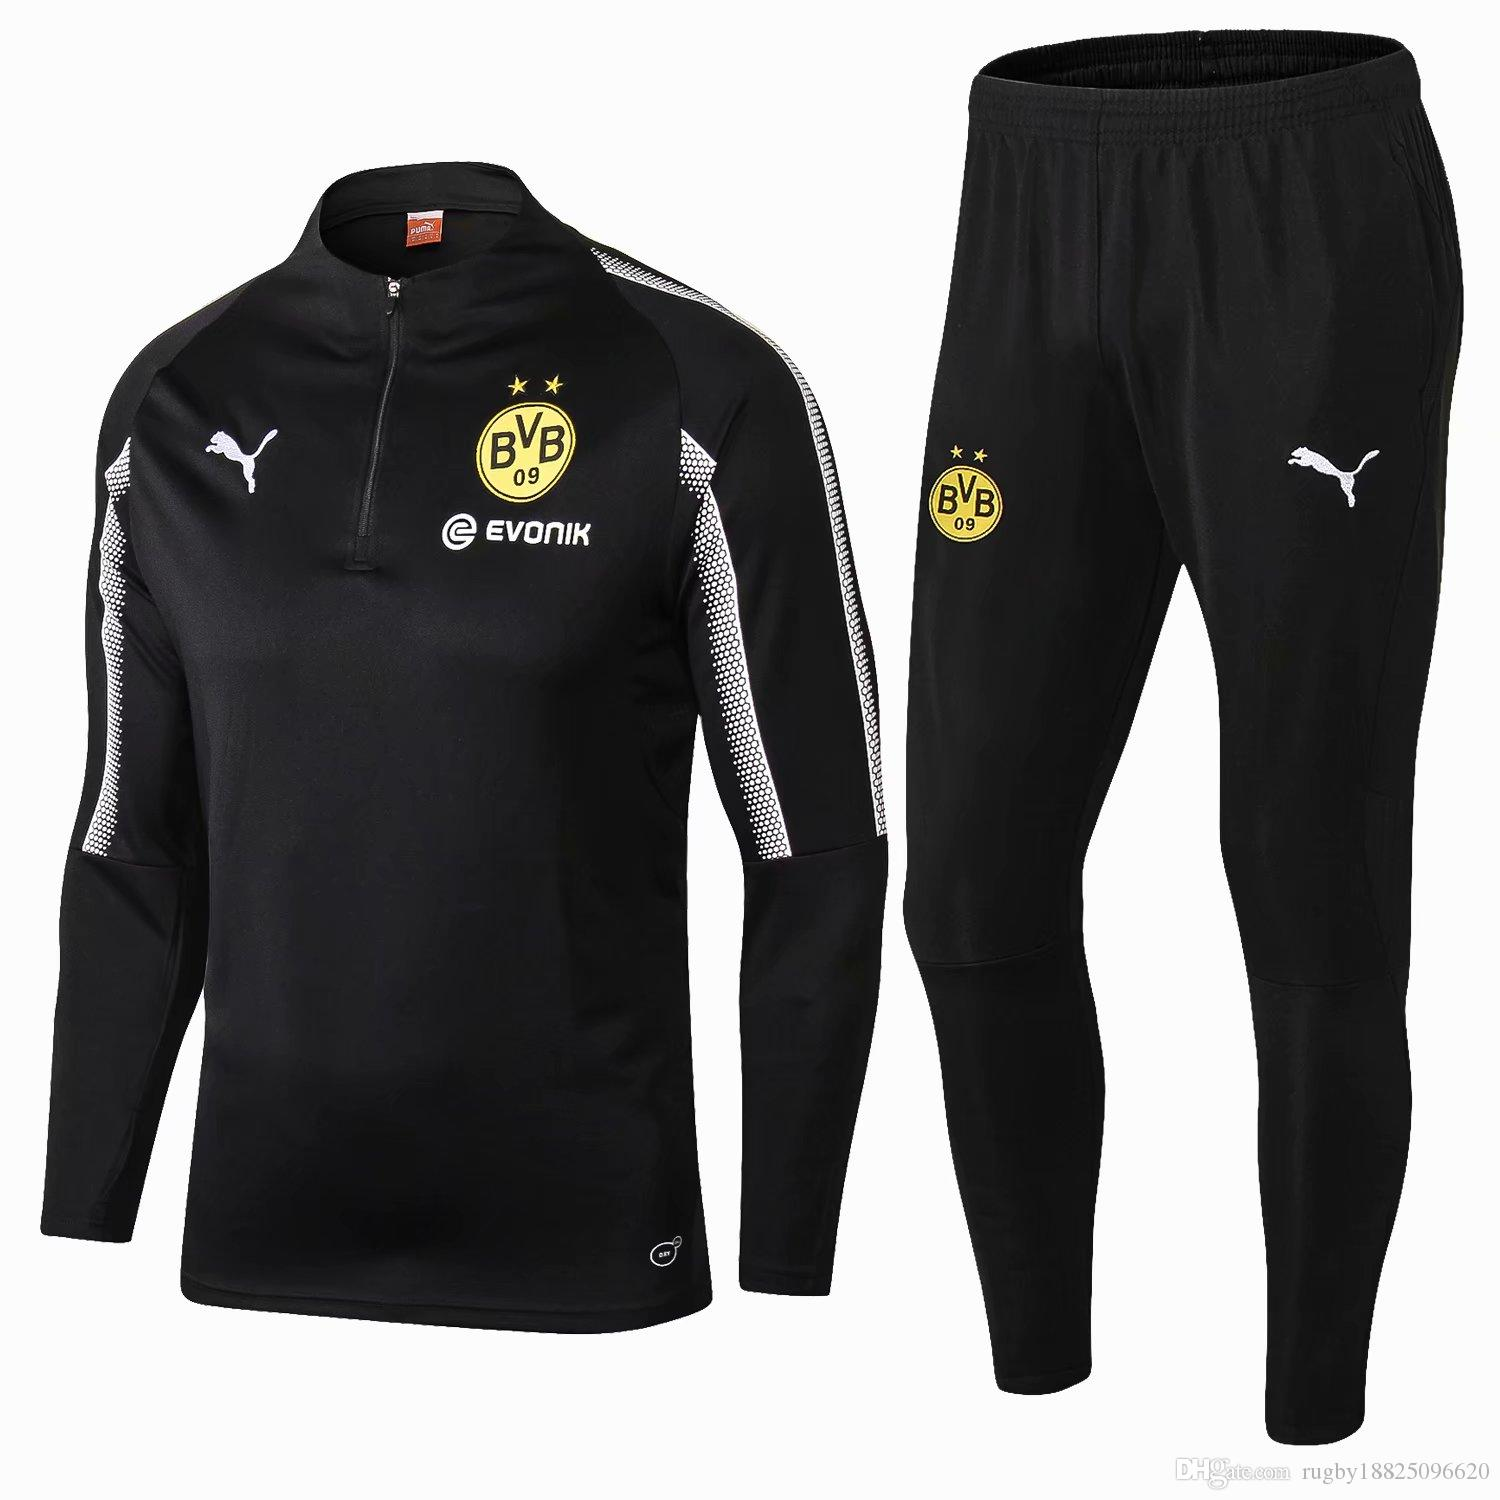 huge discount c7ae4 95a72 2018 Best Selling New 18 19 Season Dortmund Jerseys Training Suit 2018 2019  Home Away Tracksuits Soccer Jerseys REUS Training Suit Size S XL From ...